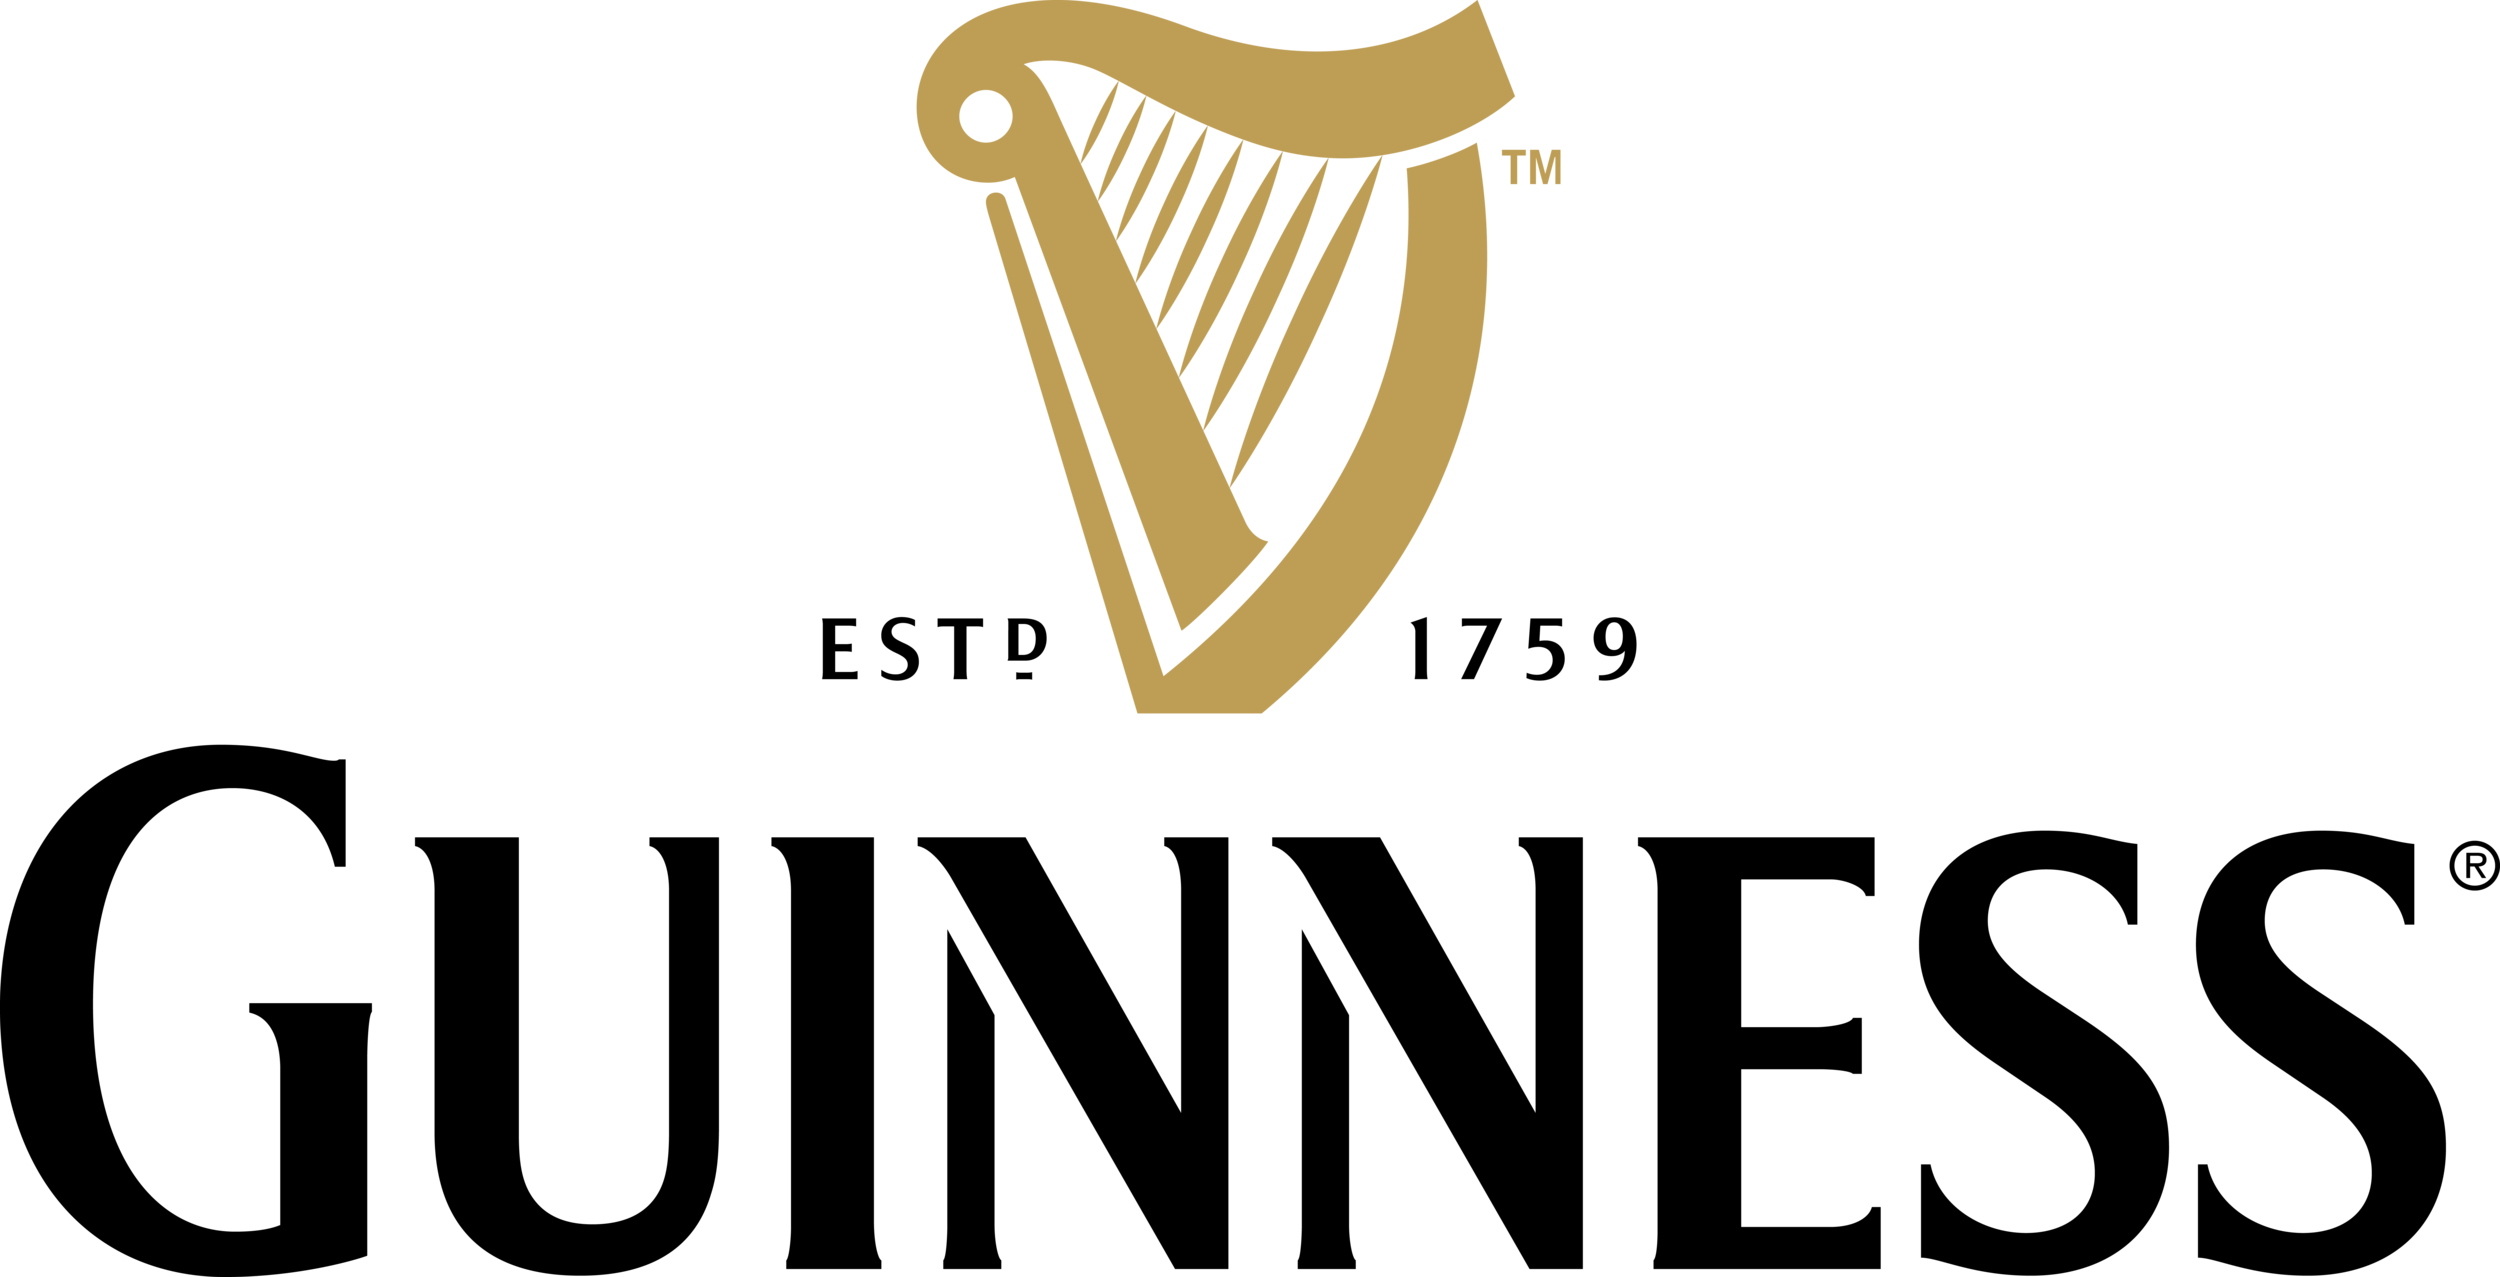 guinness-8.png